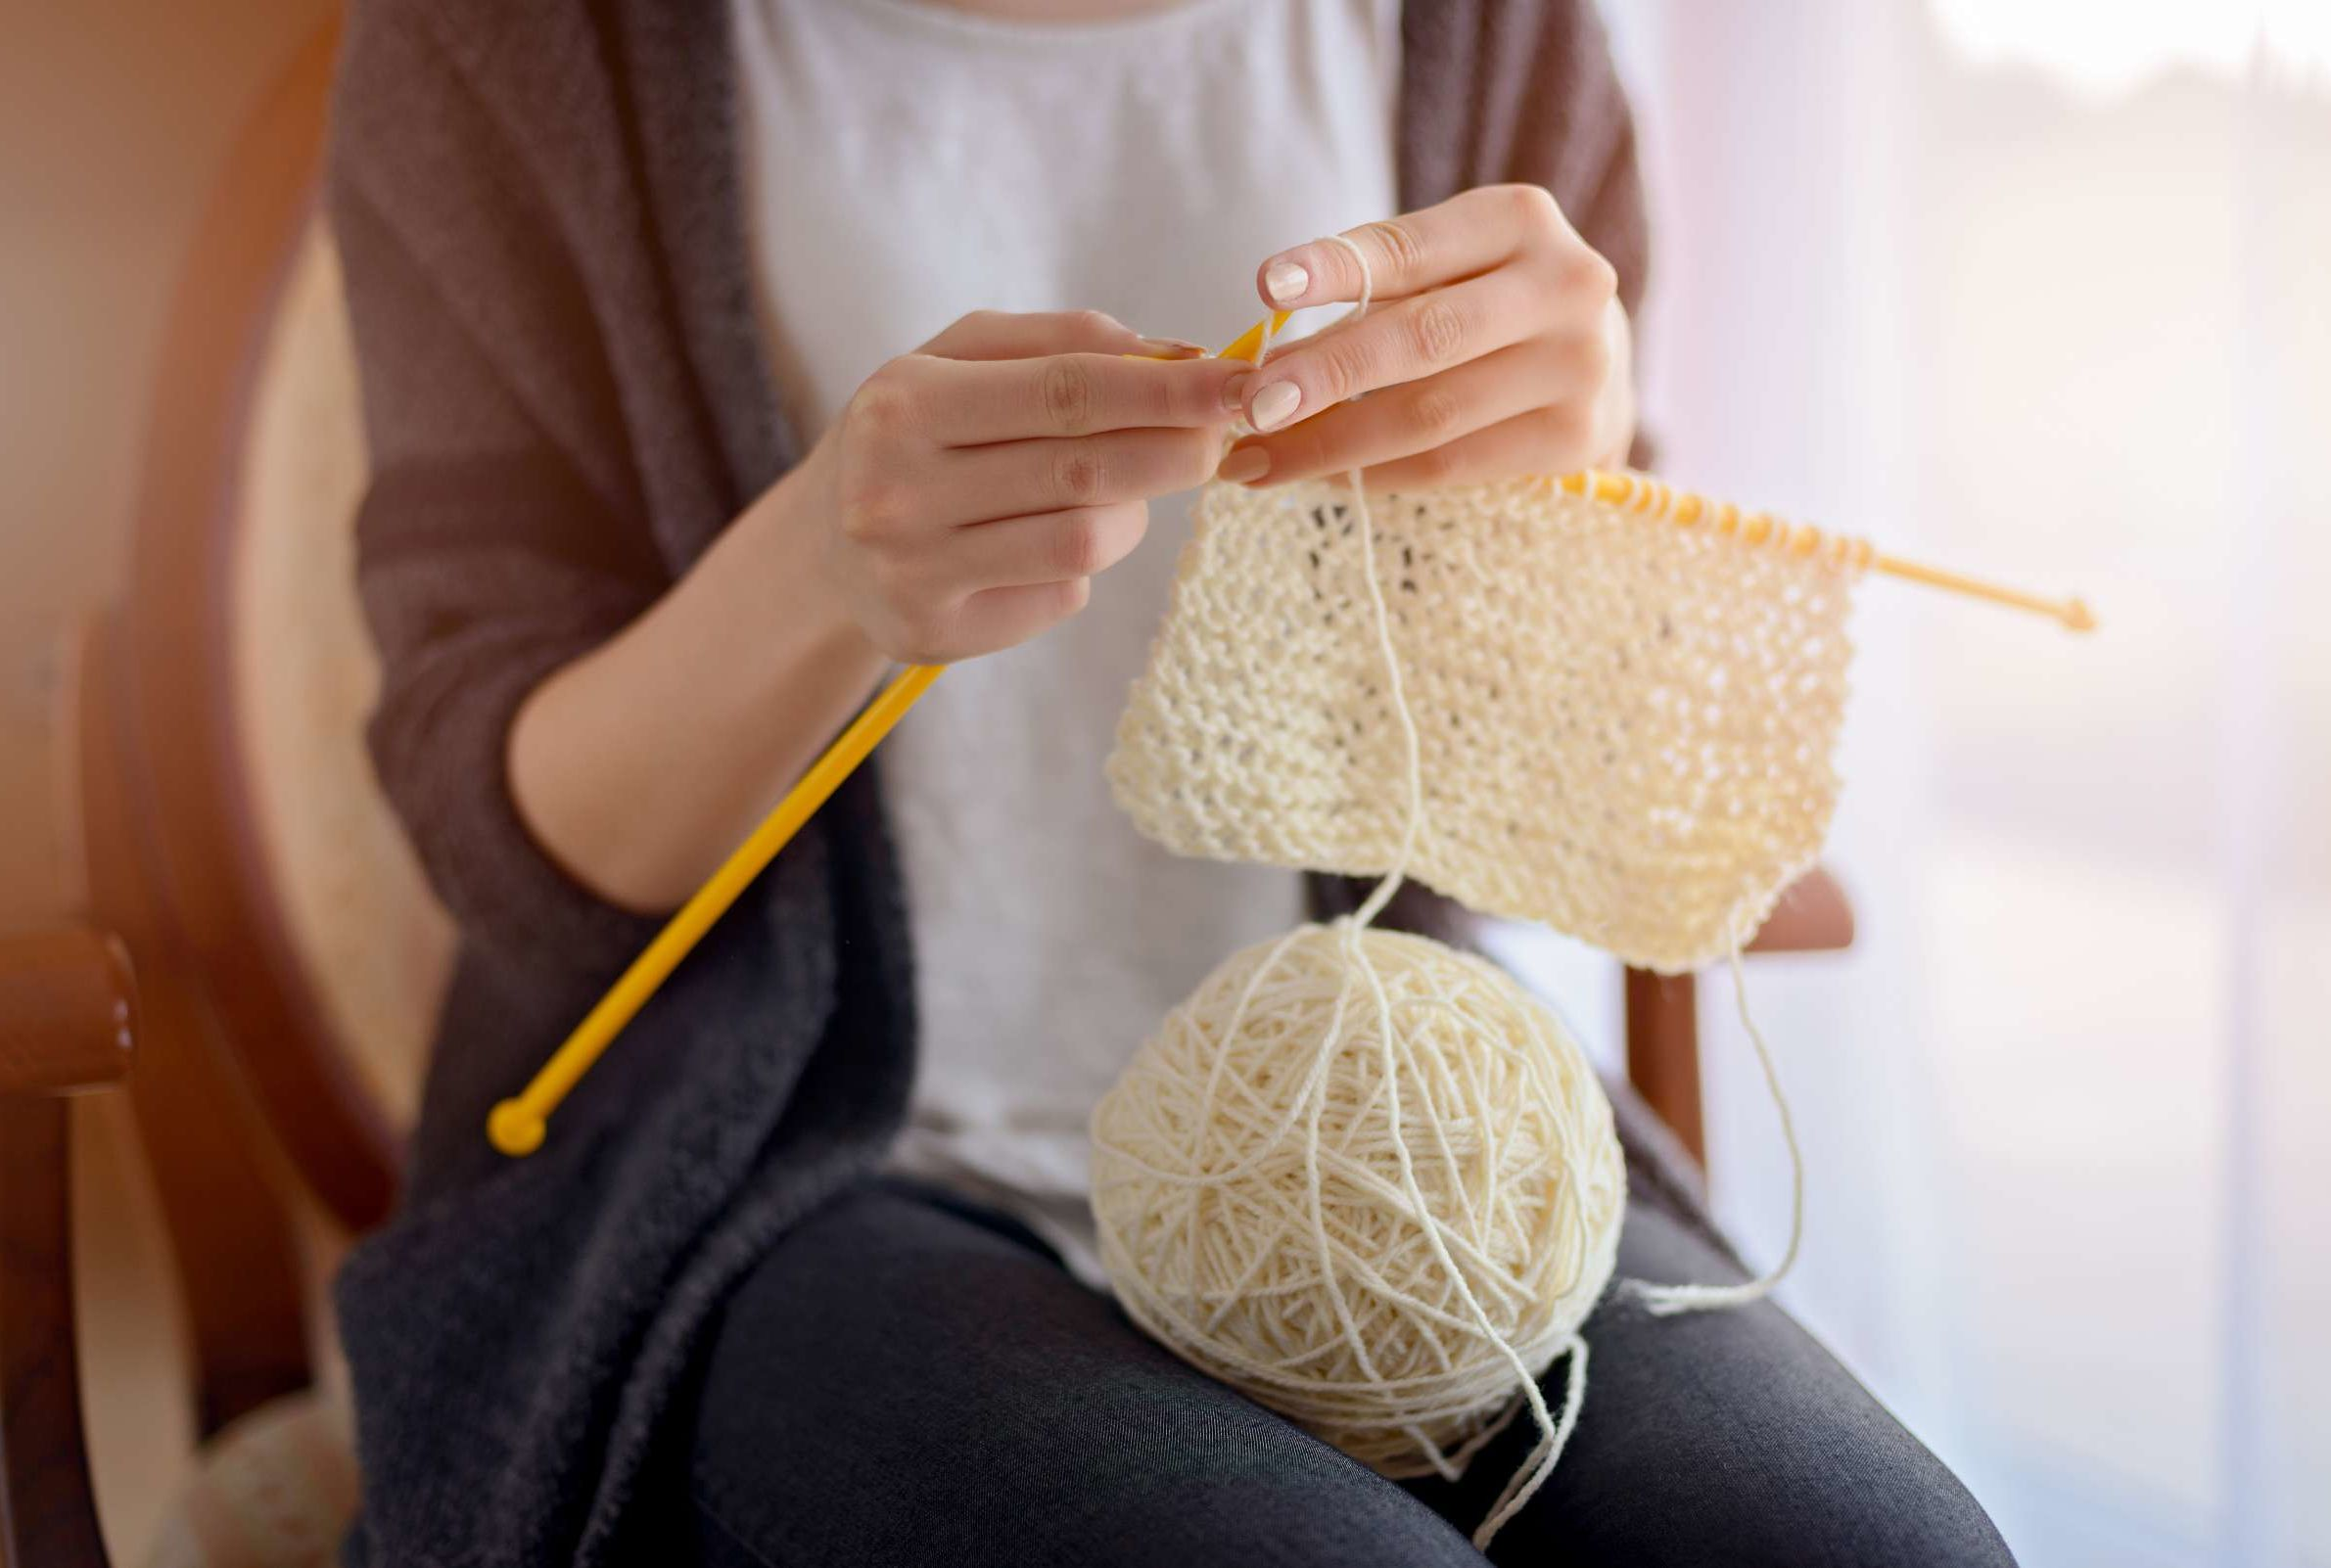 Crocheting Vs Knitting What S The Difference Mental Floss,Rotel Dip Ingredients